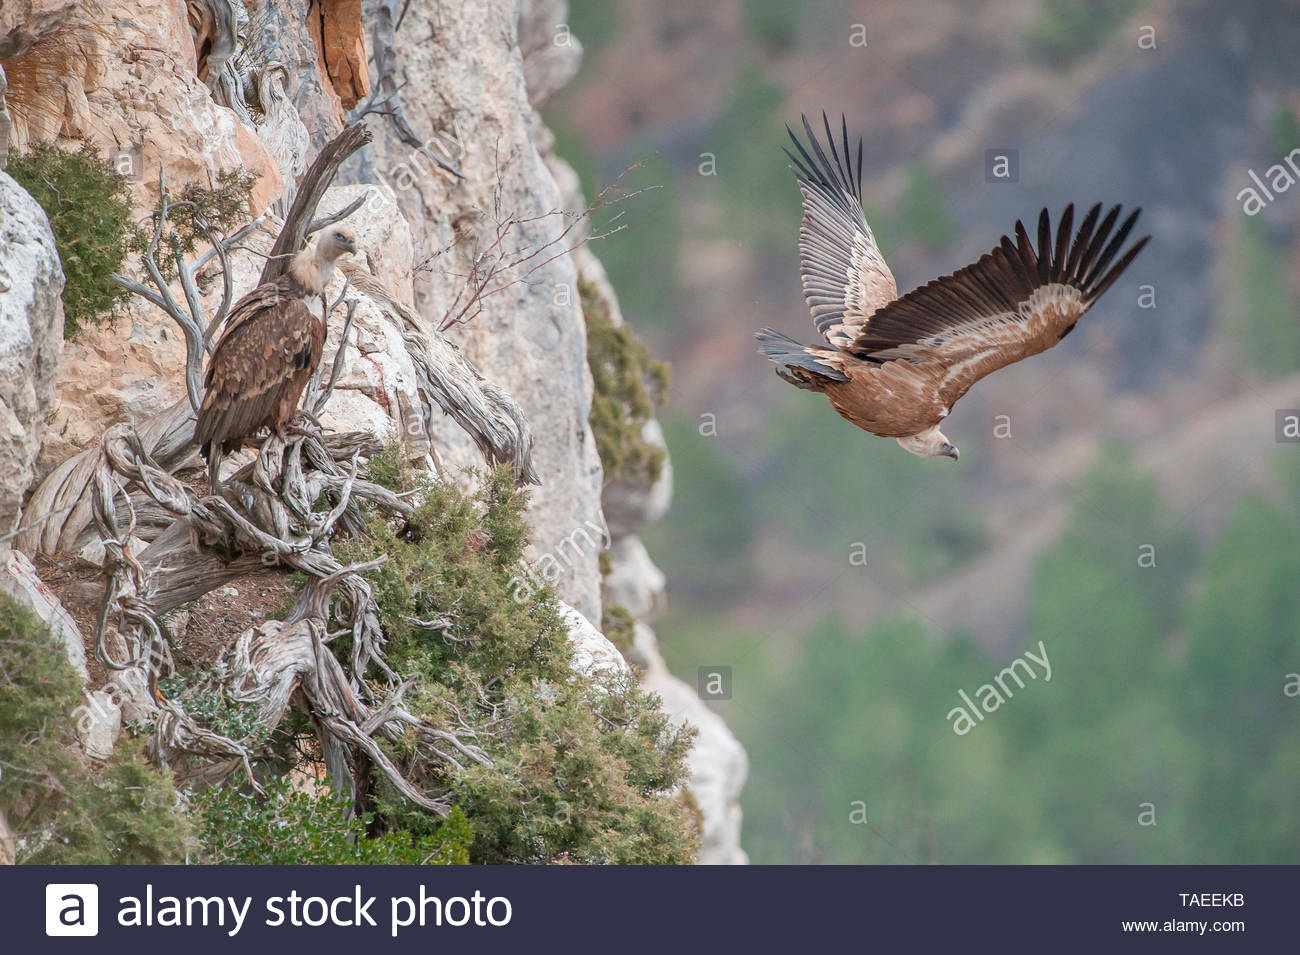 Flying vulture (Gyps fulvus) in flight, Drôme, France Stock Photo